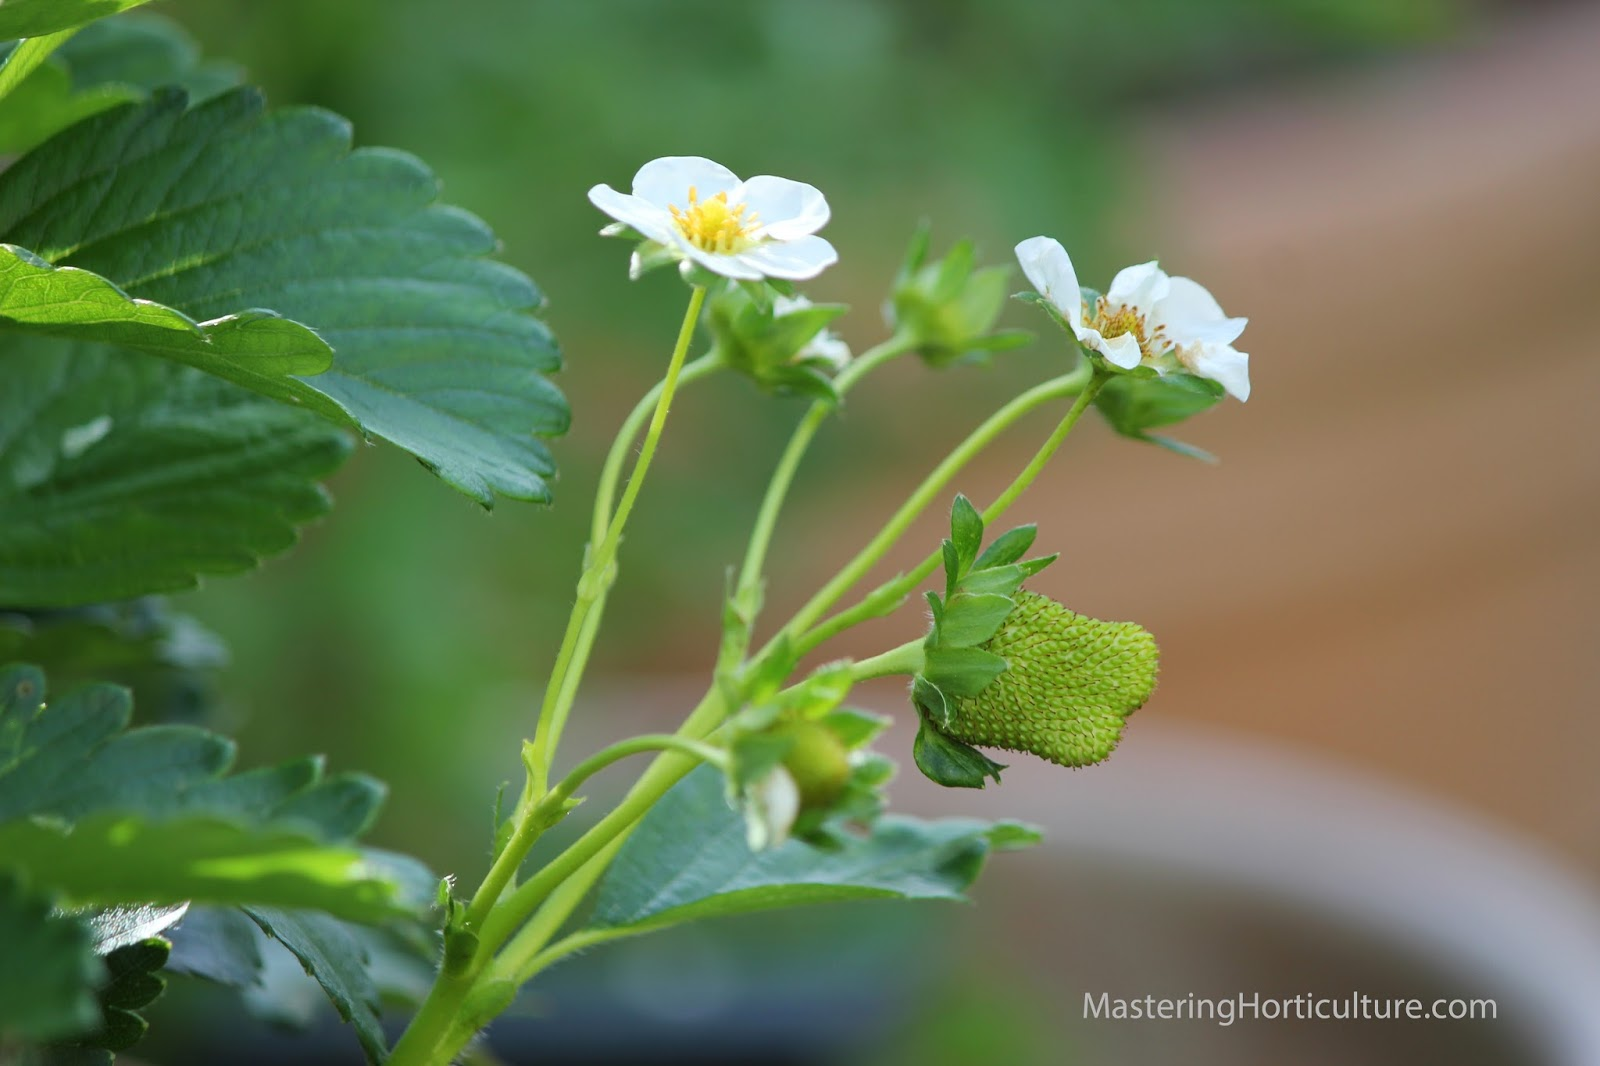 understanding horticulture Horticulture definition, the cultivation of a garden, orchard, or nursery the cultivation of flowers, fruits, vegetables, or ornamental plants see more.